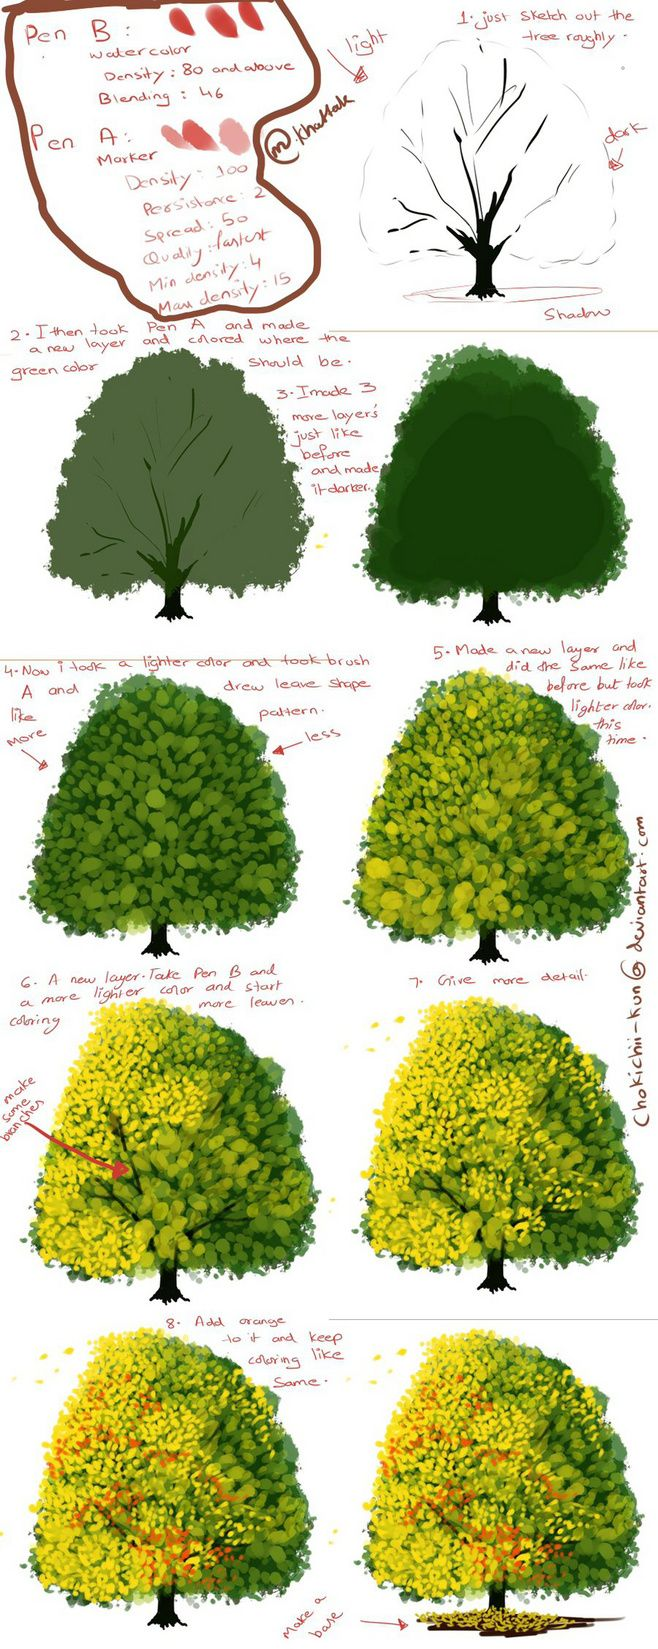 from pixiv.net nature background tree drawing anime color | Art ...